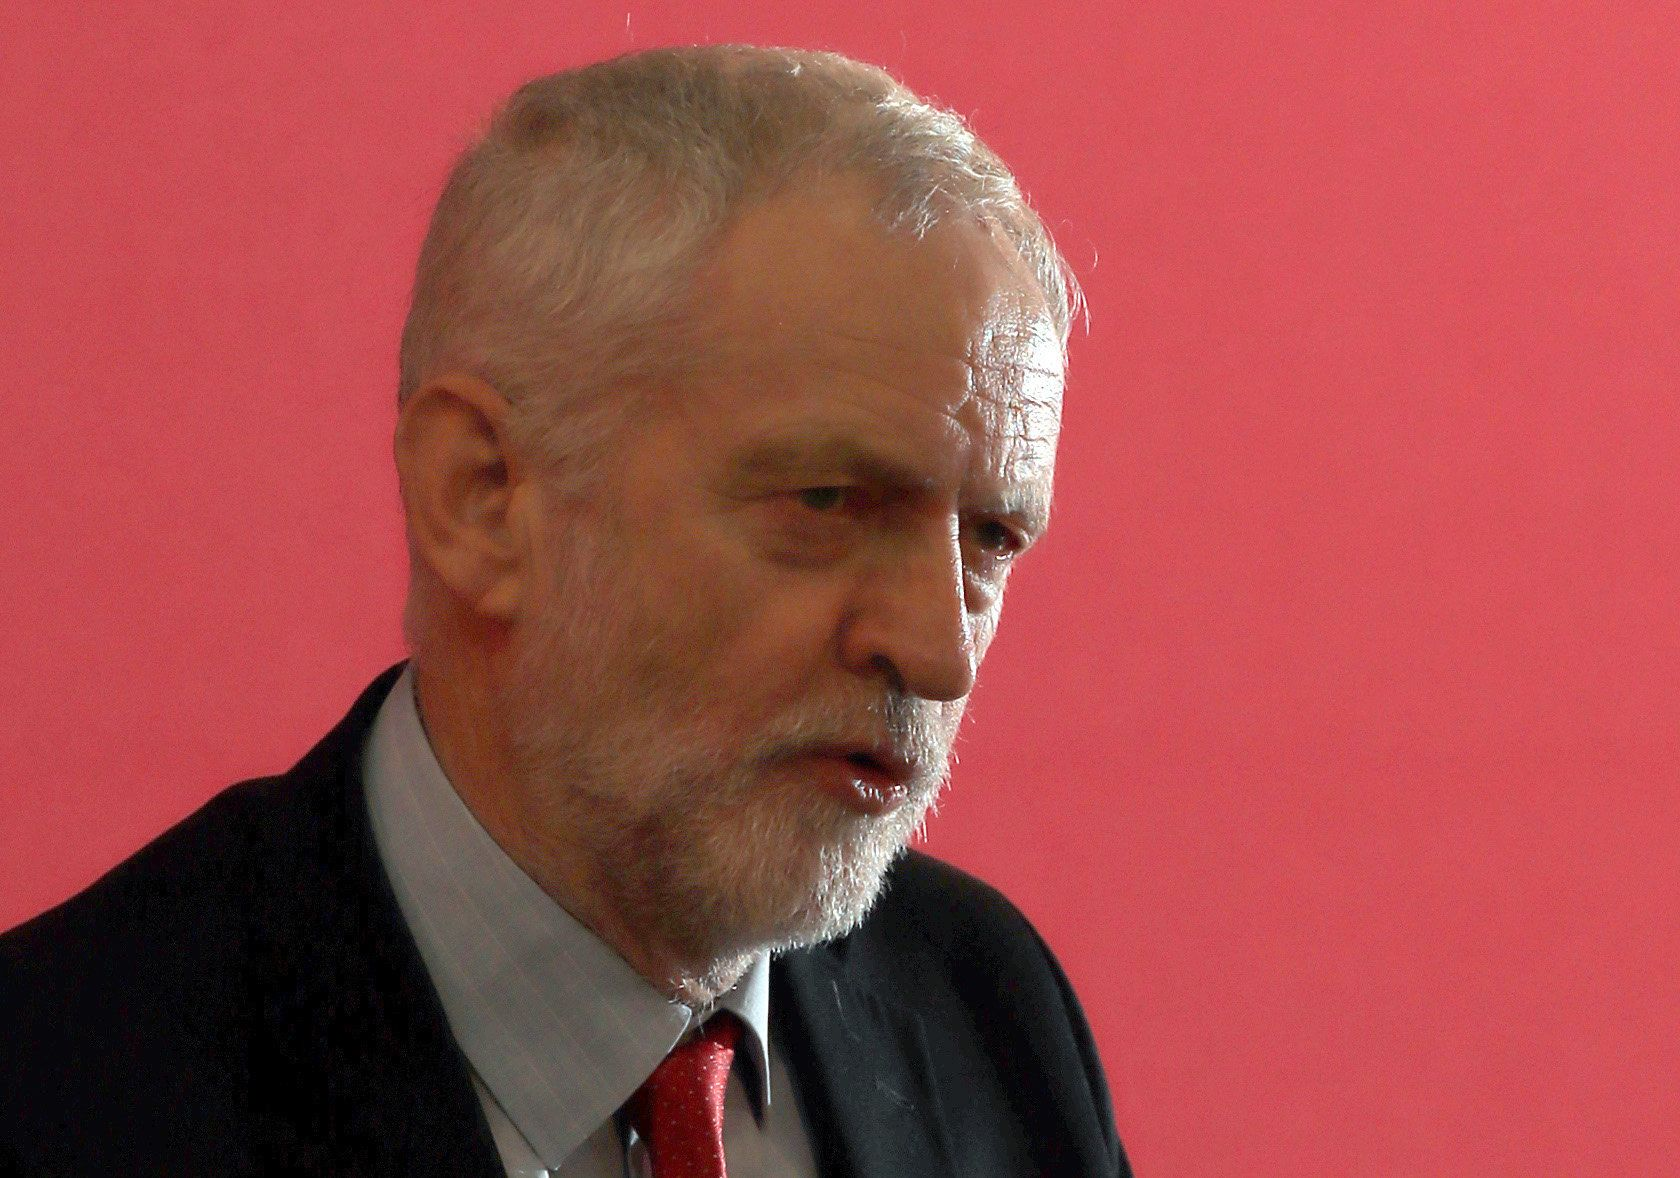 Corbyn slammed for attending Seder hosted by pro-Palestinian Jewish group